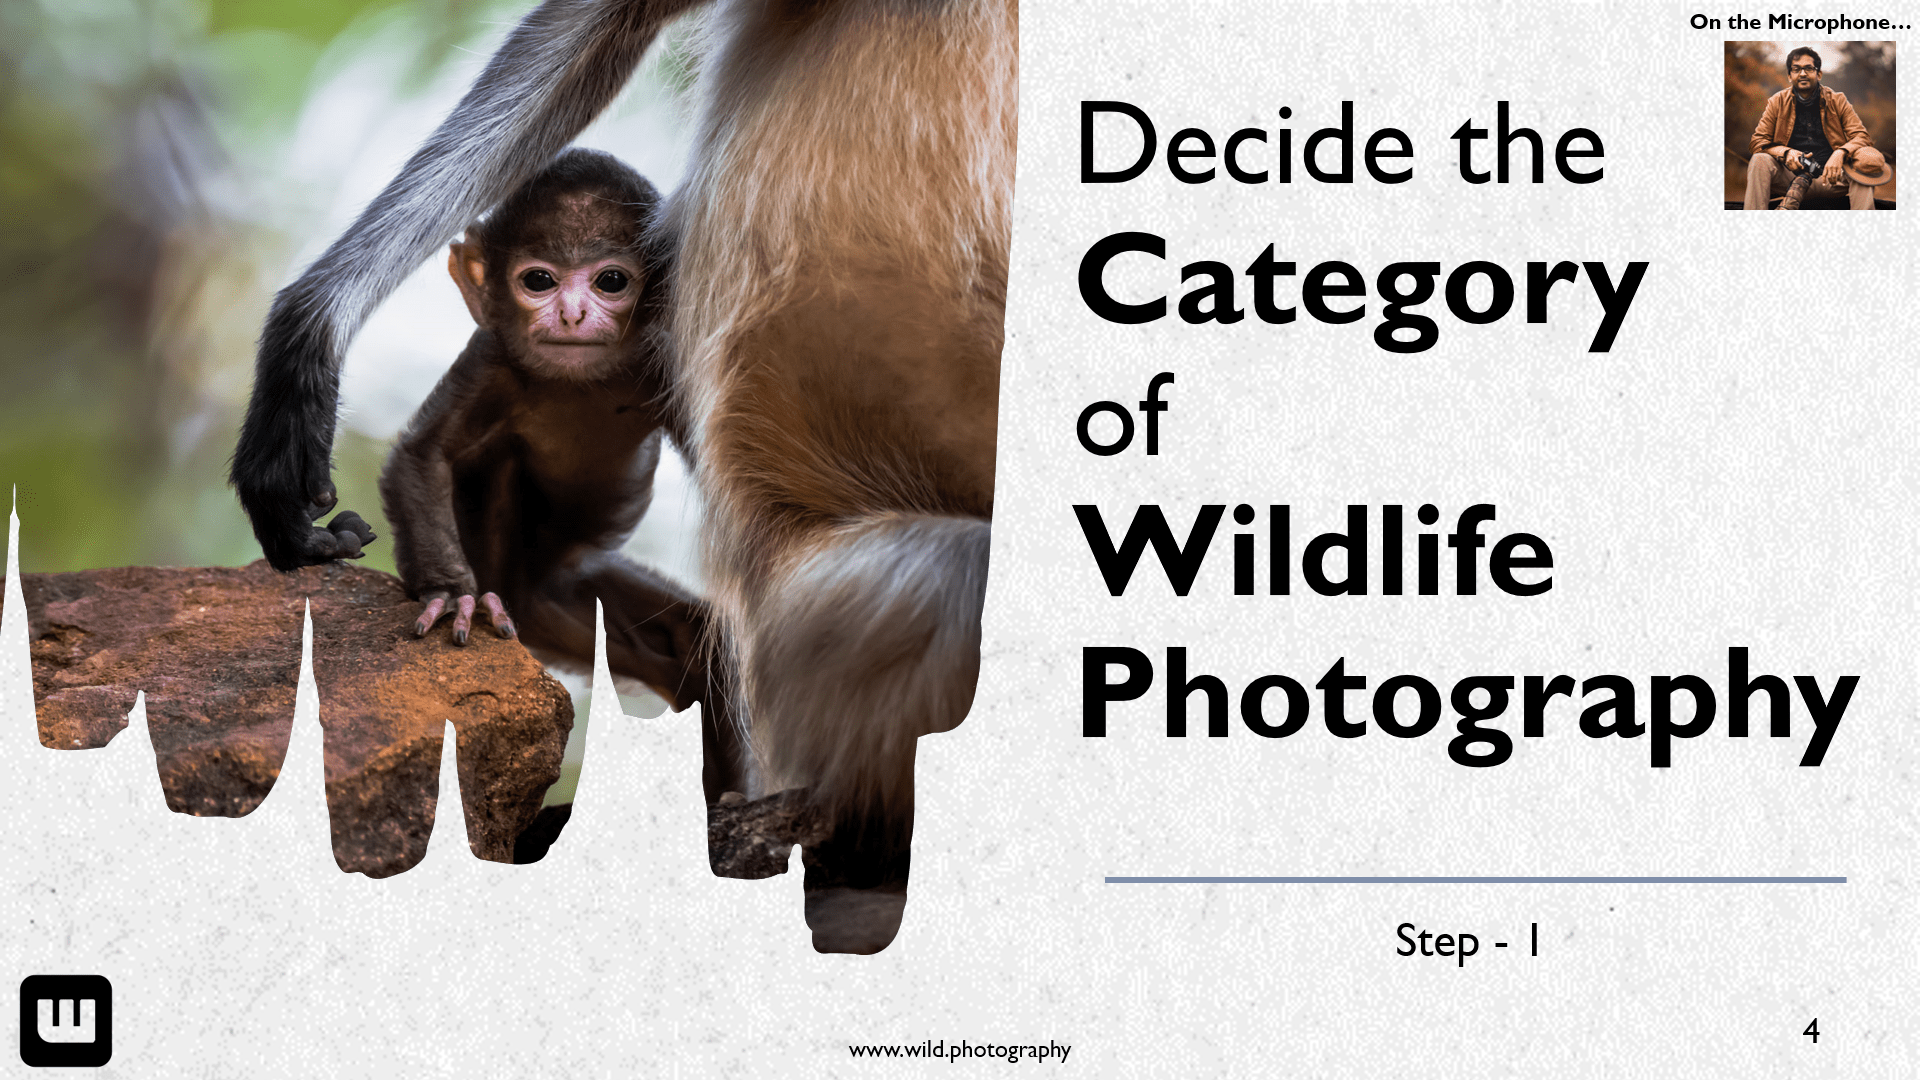 Decide the category of wildlife photography